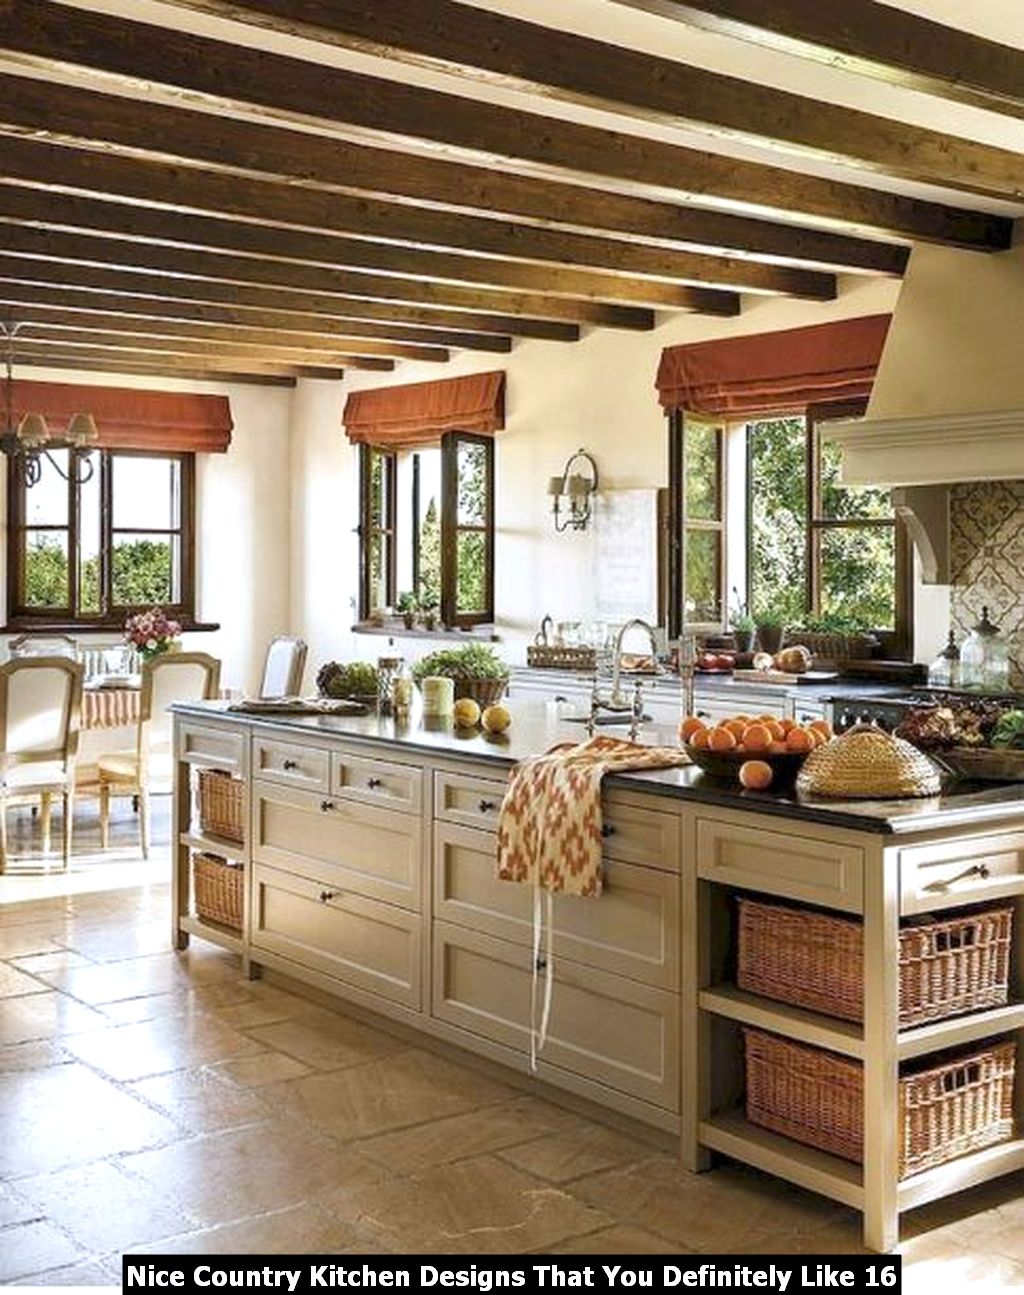 Nice Country Kitchen Designs That You Definitely Like 16